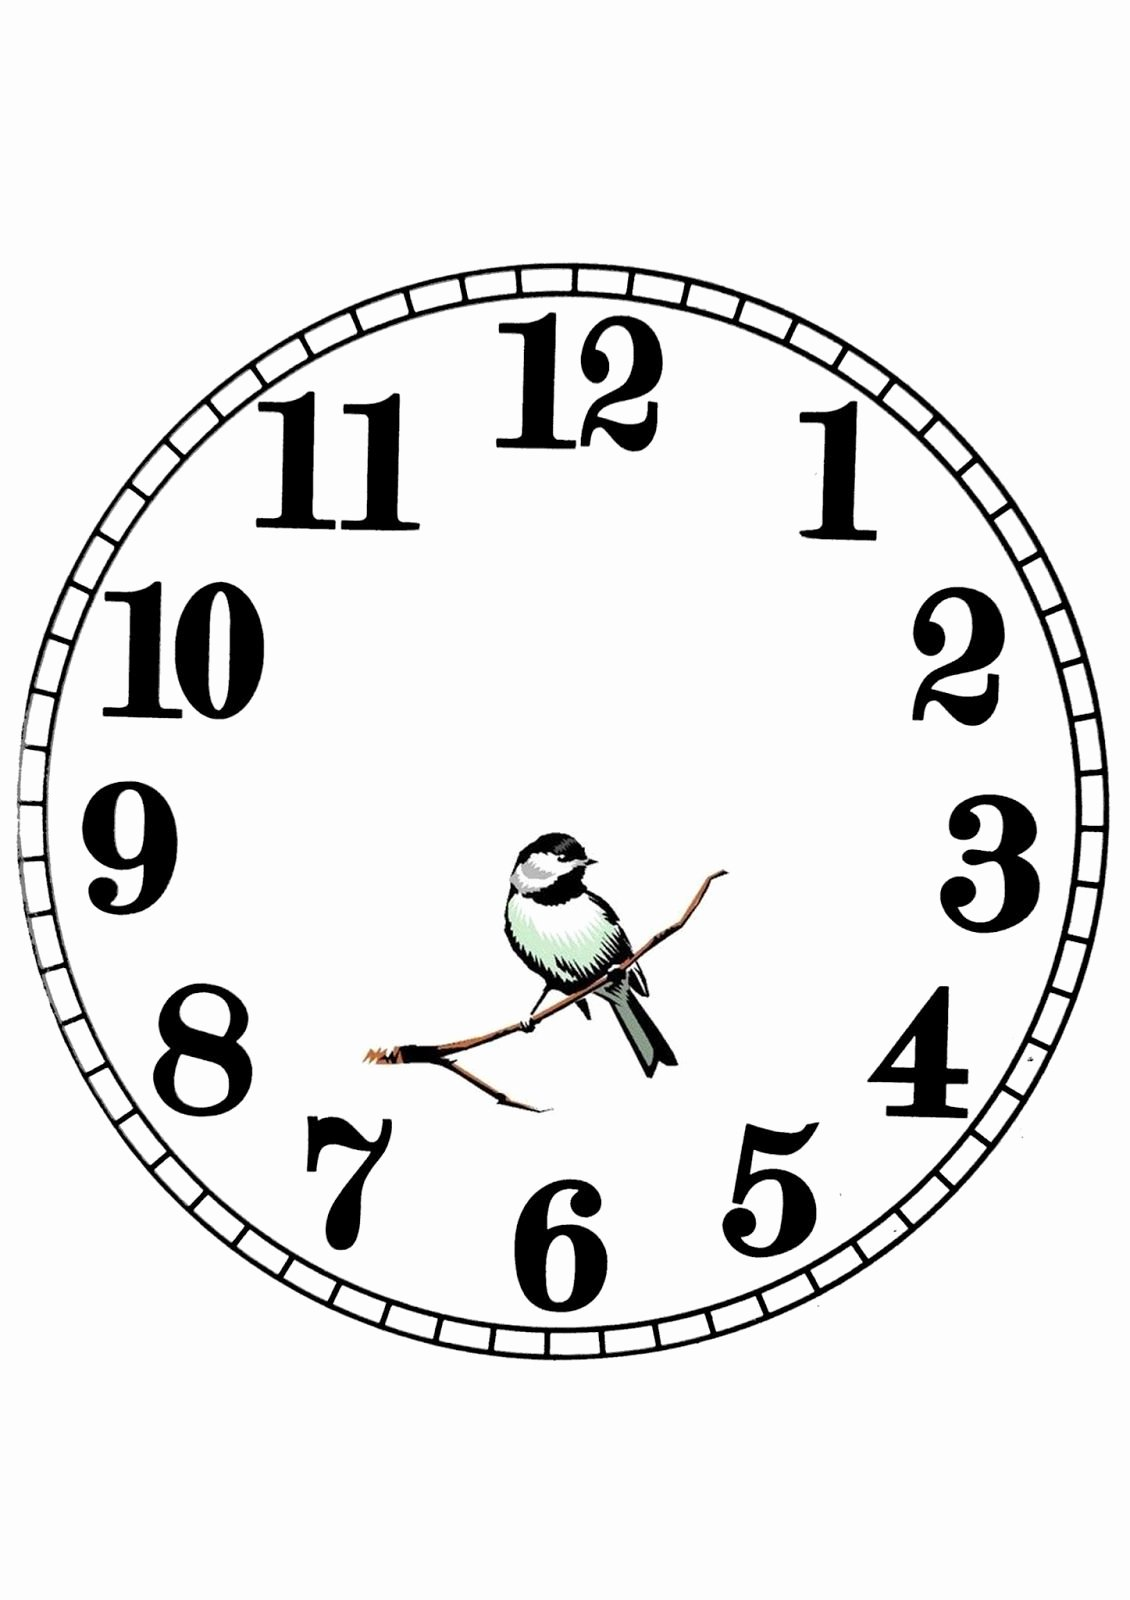 Printable Clock Face Template Fresh Pin by Deirdre P On Printables Transfers Monotone